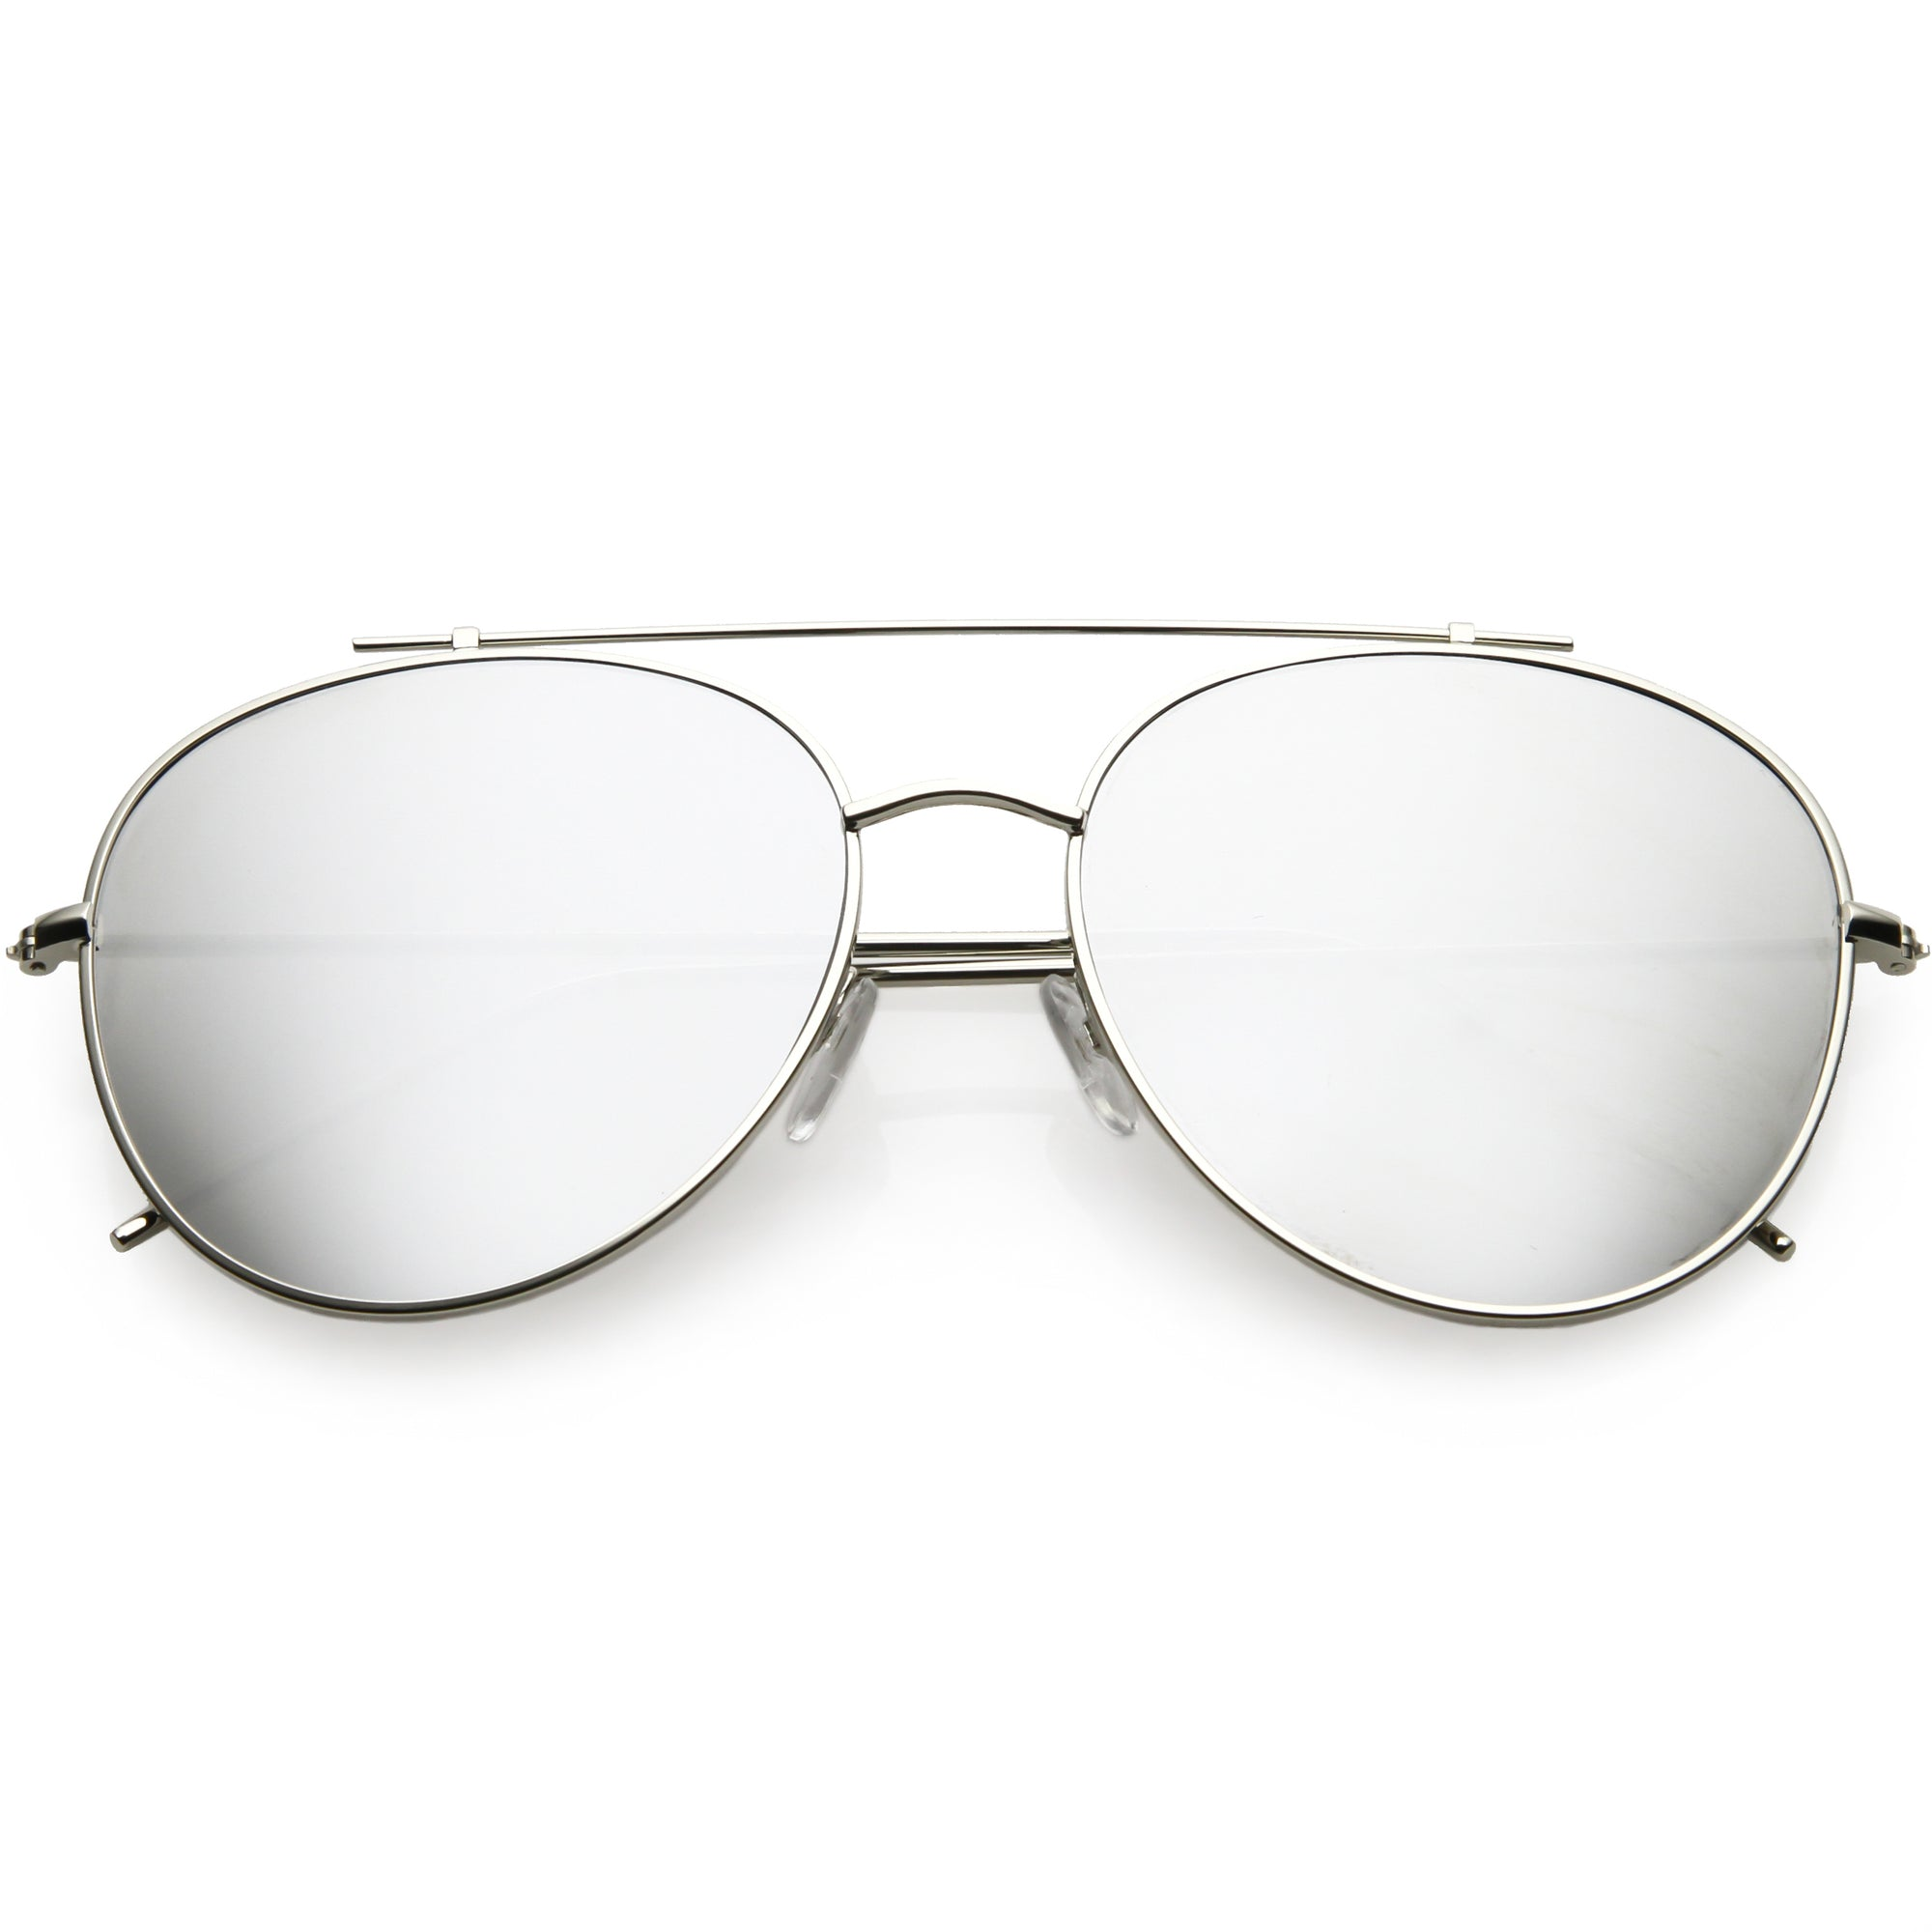 Oversize Retro Modern Mirrored Flat Lens Aviator Sunglasses C856